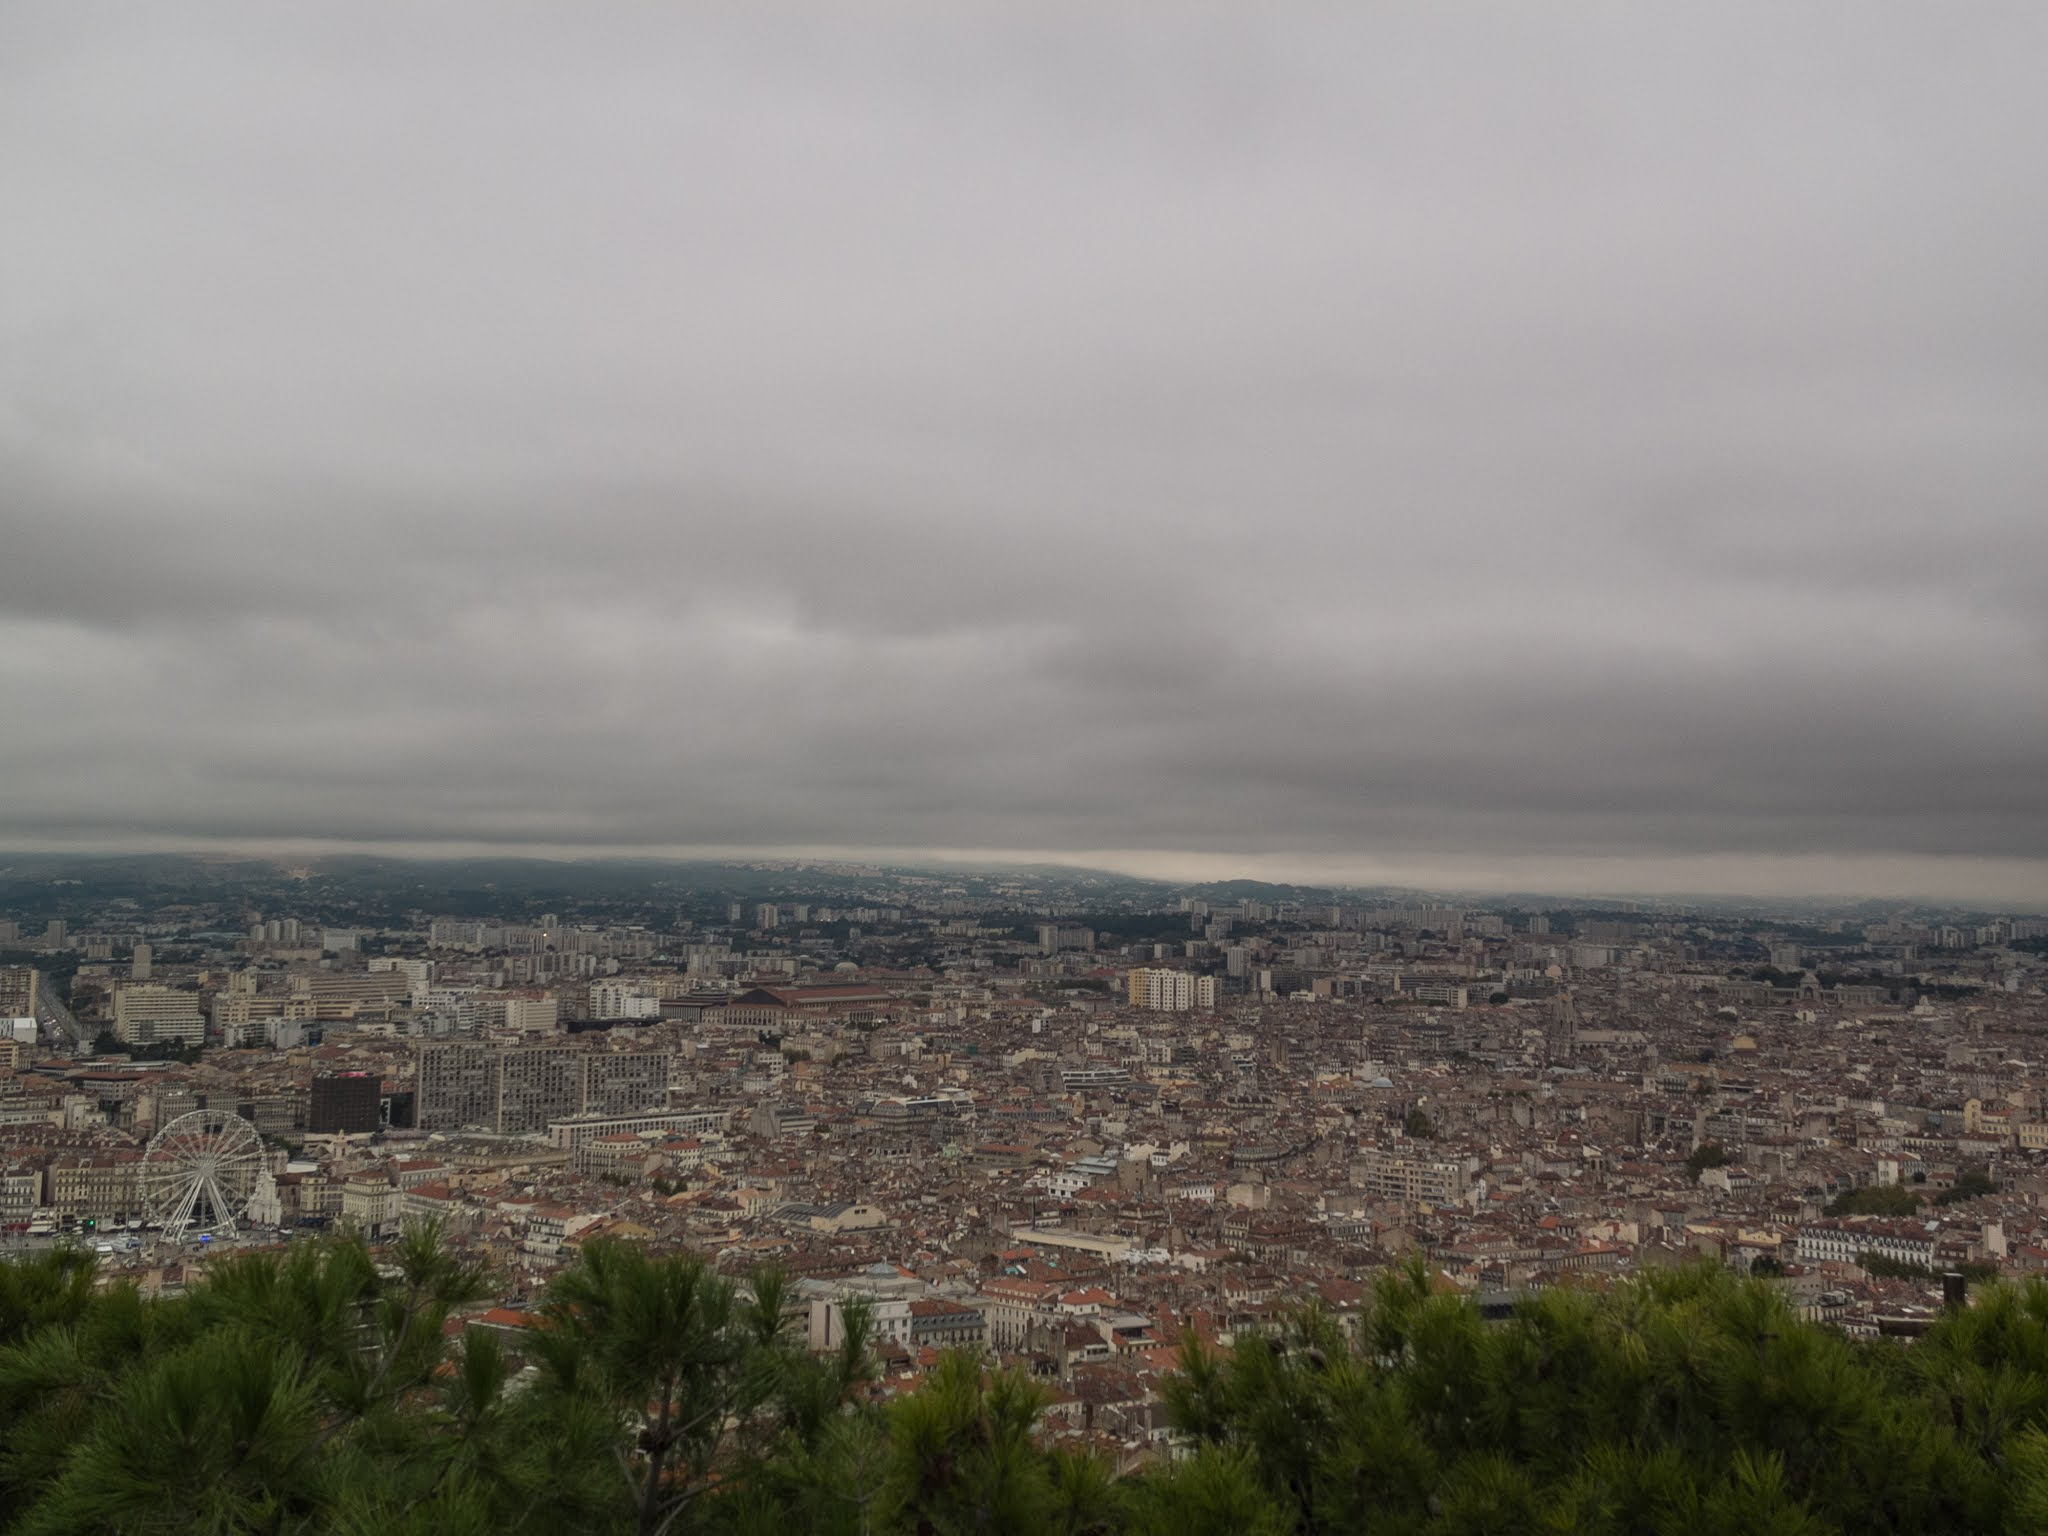 View of Marseille from La Garde on a rainy, overcast day.